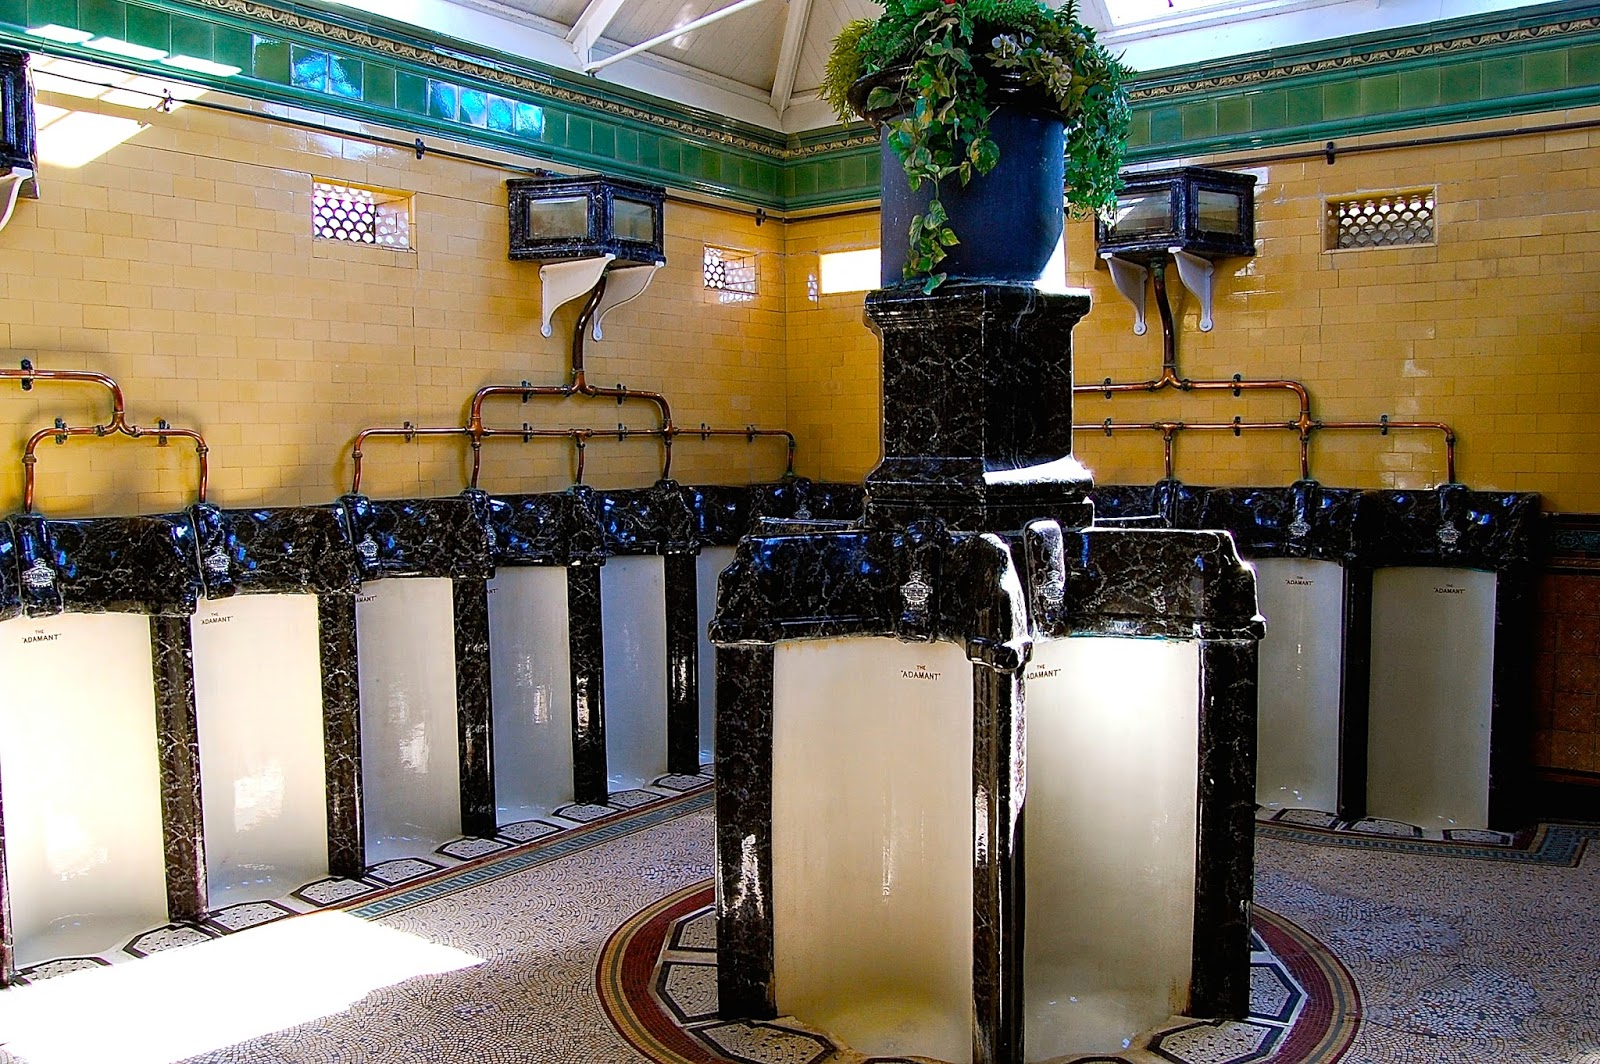 Urinals in the Victorian toilets, Rothesay, Isle of Bute